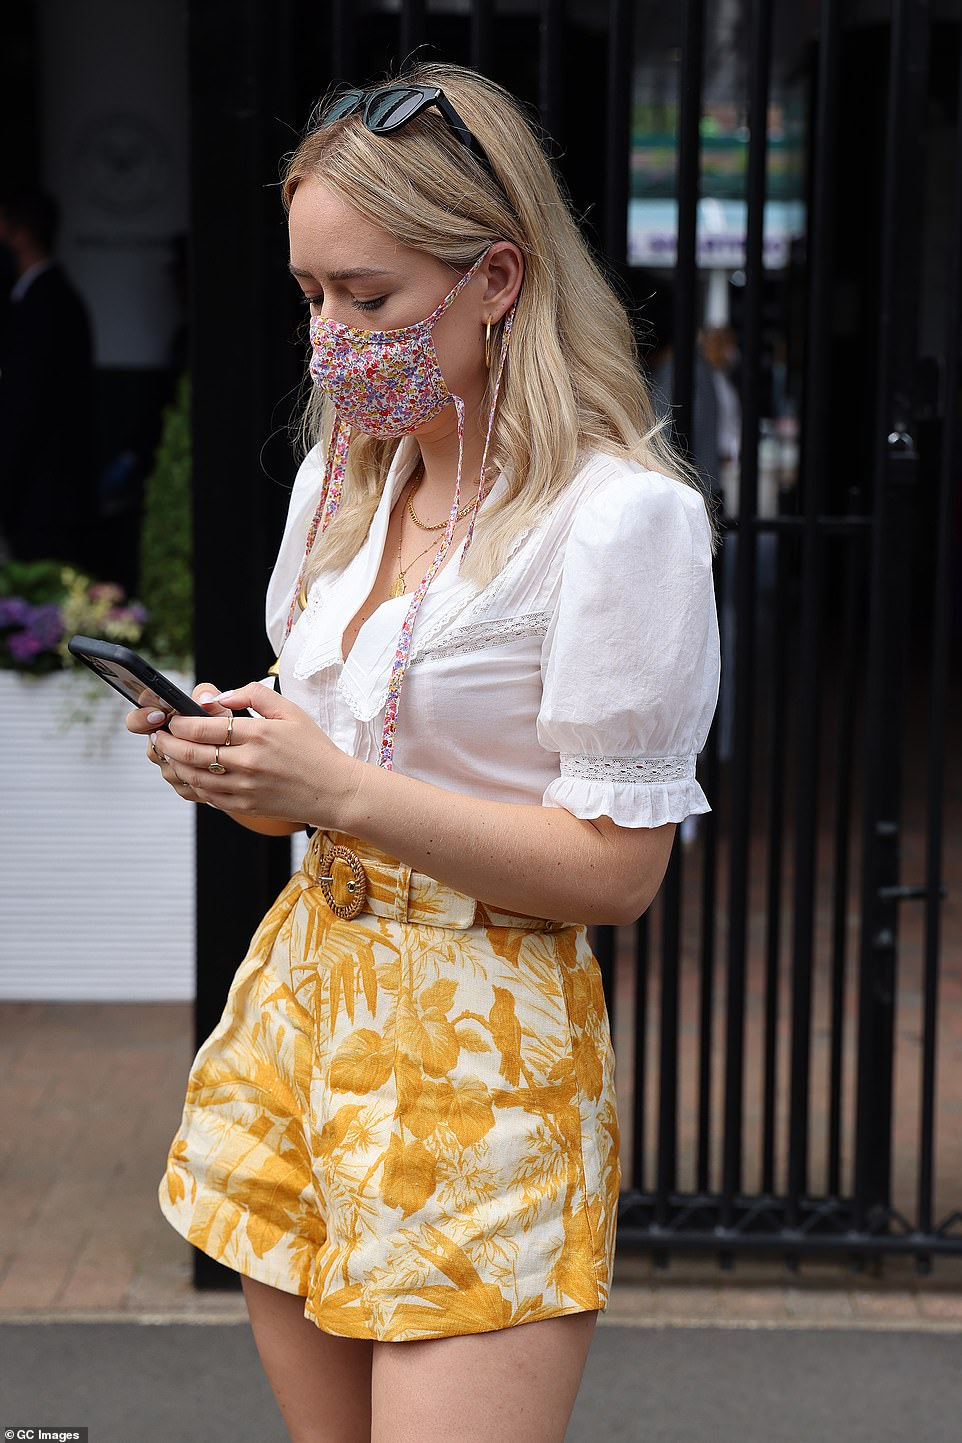 Precautions: Tanya made sure to put safety first by wearing a pretty pink floral face covering as she looked at something on her phone